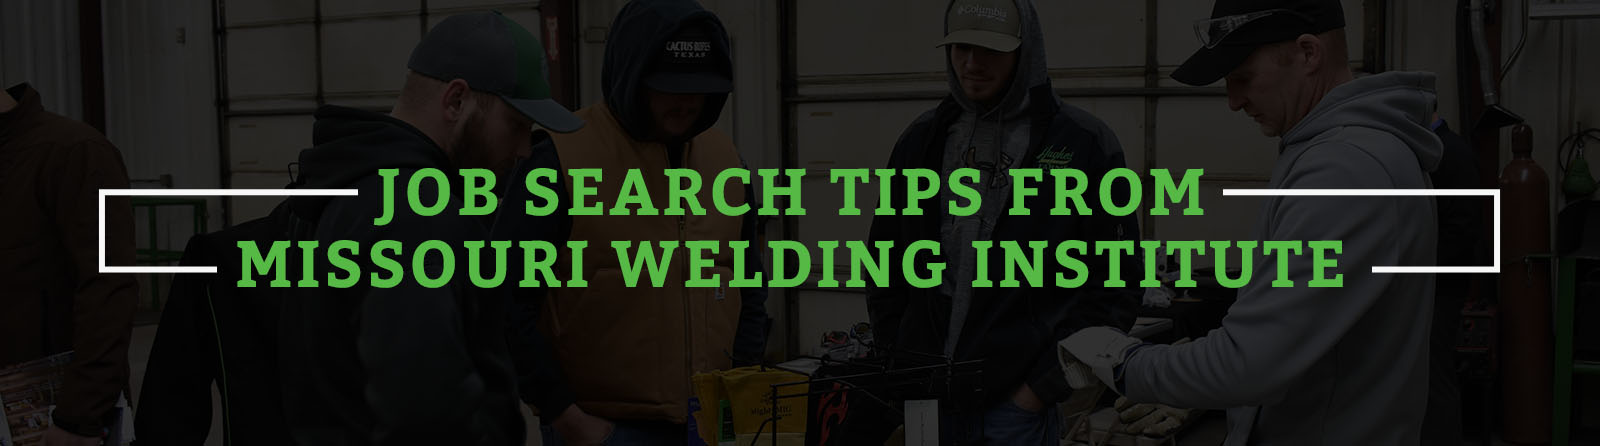 JOB SEARCH TIPS FROM MISSOURI WELDING INSTITUTE